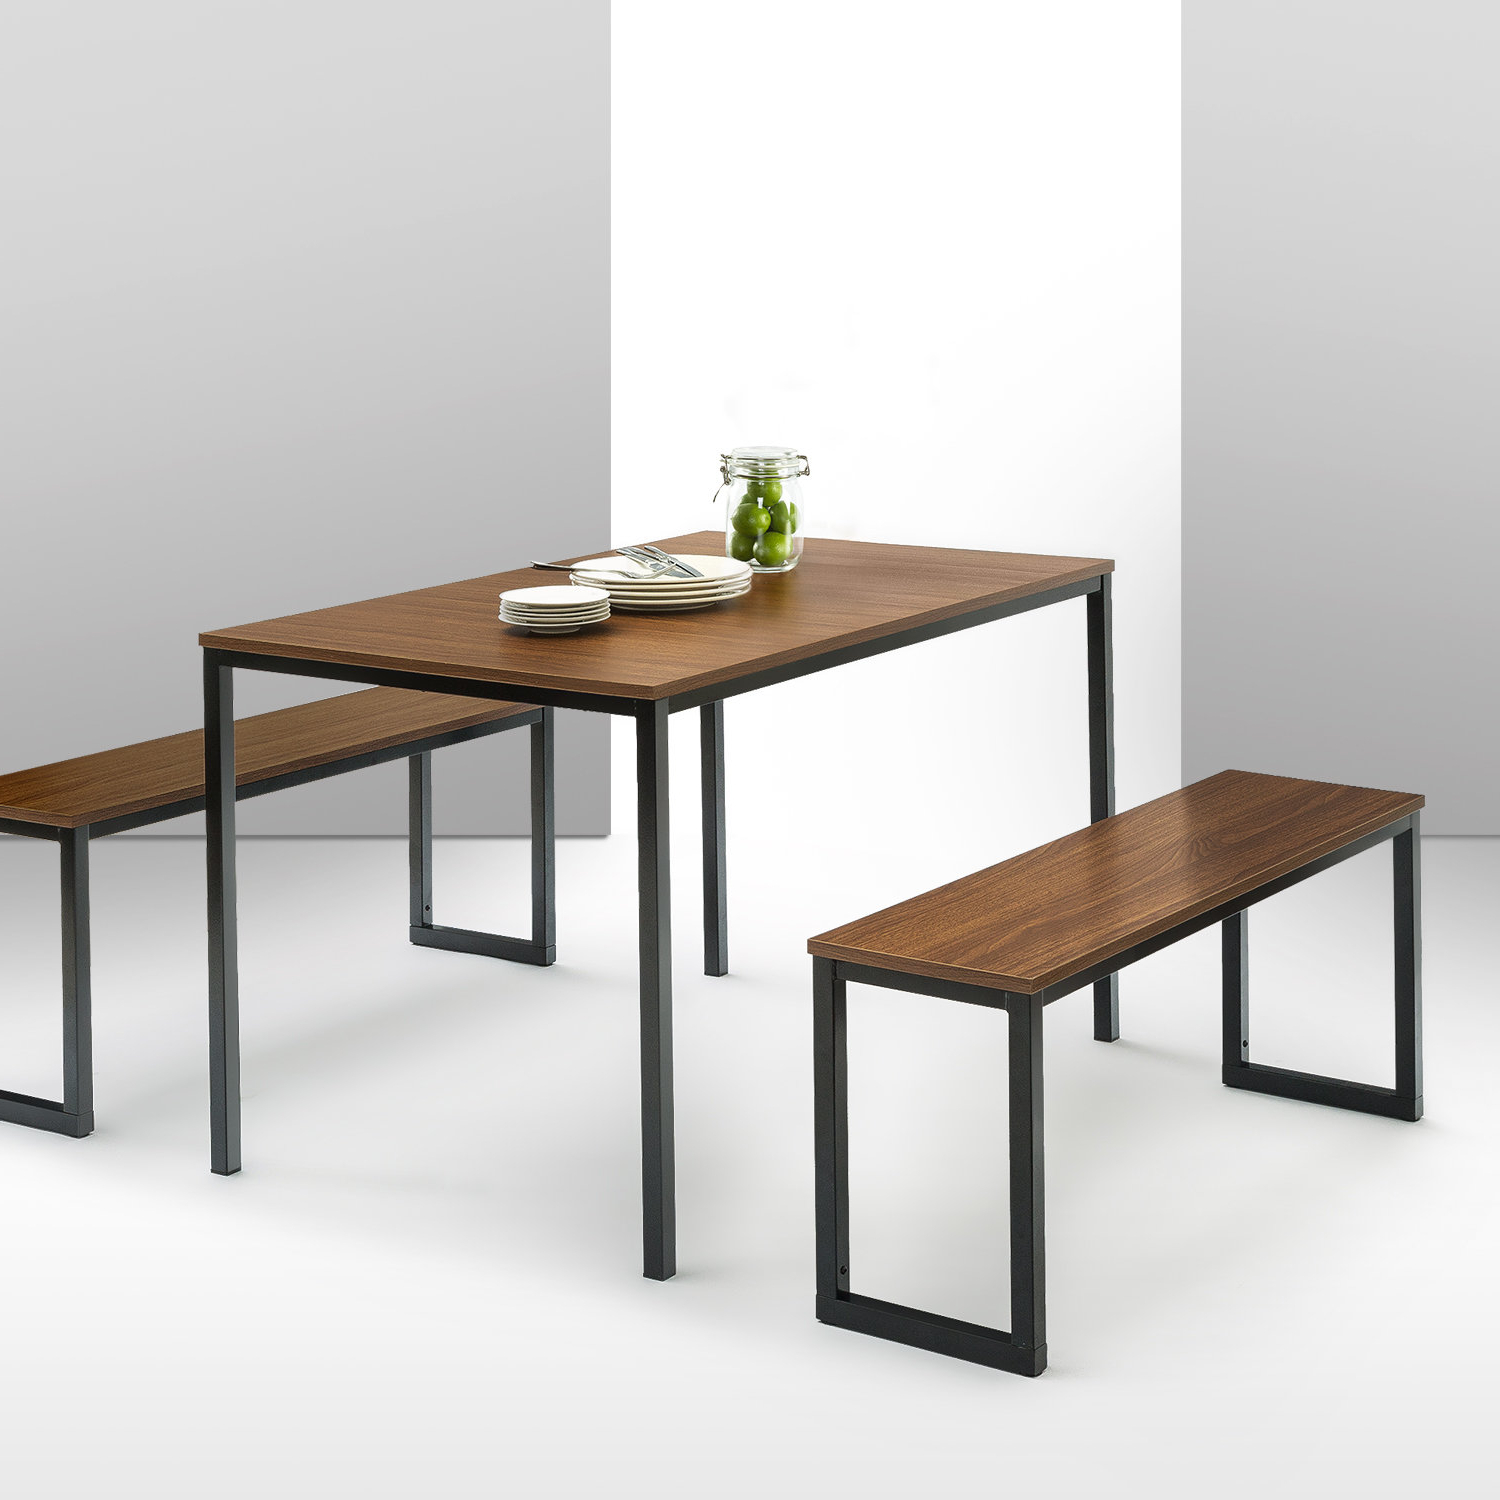 Frida 3 Piece Dining Table Set For Latest Debby Small Space 3 Piece Dining Sets (View 14 of 25)